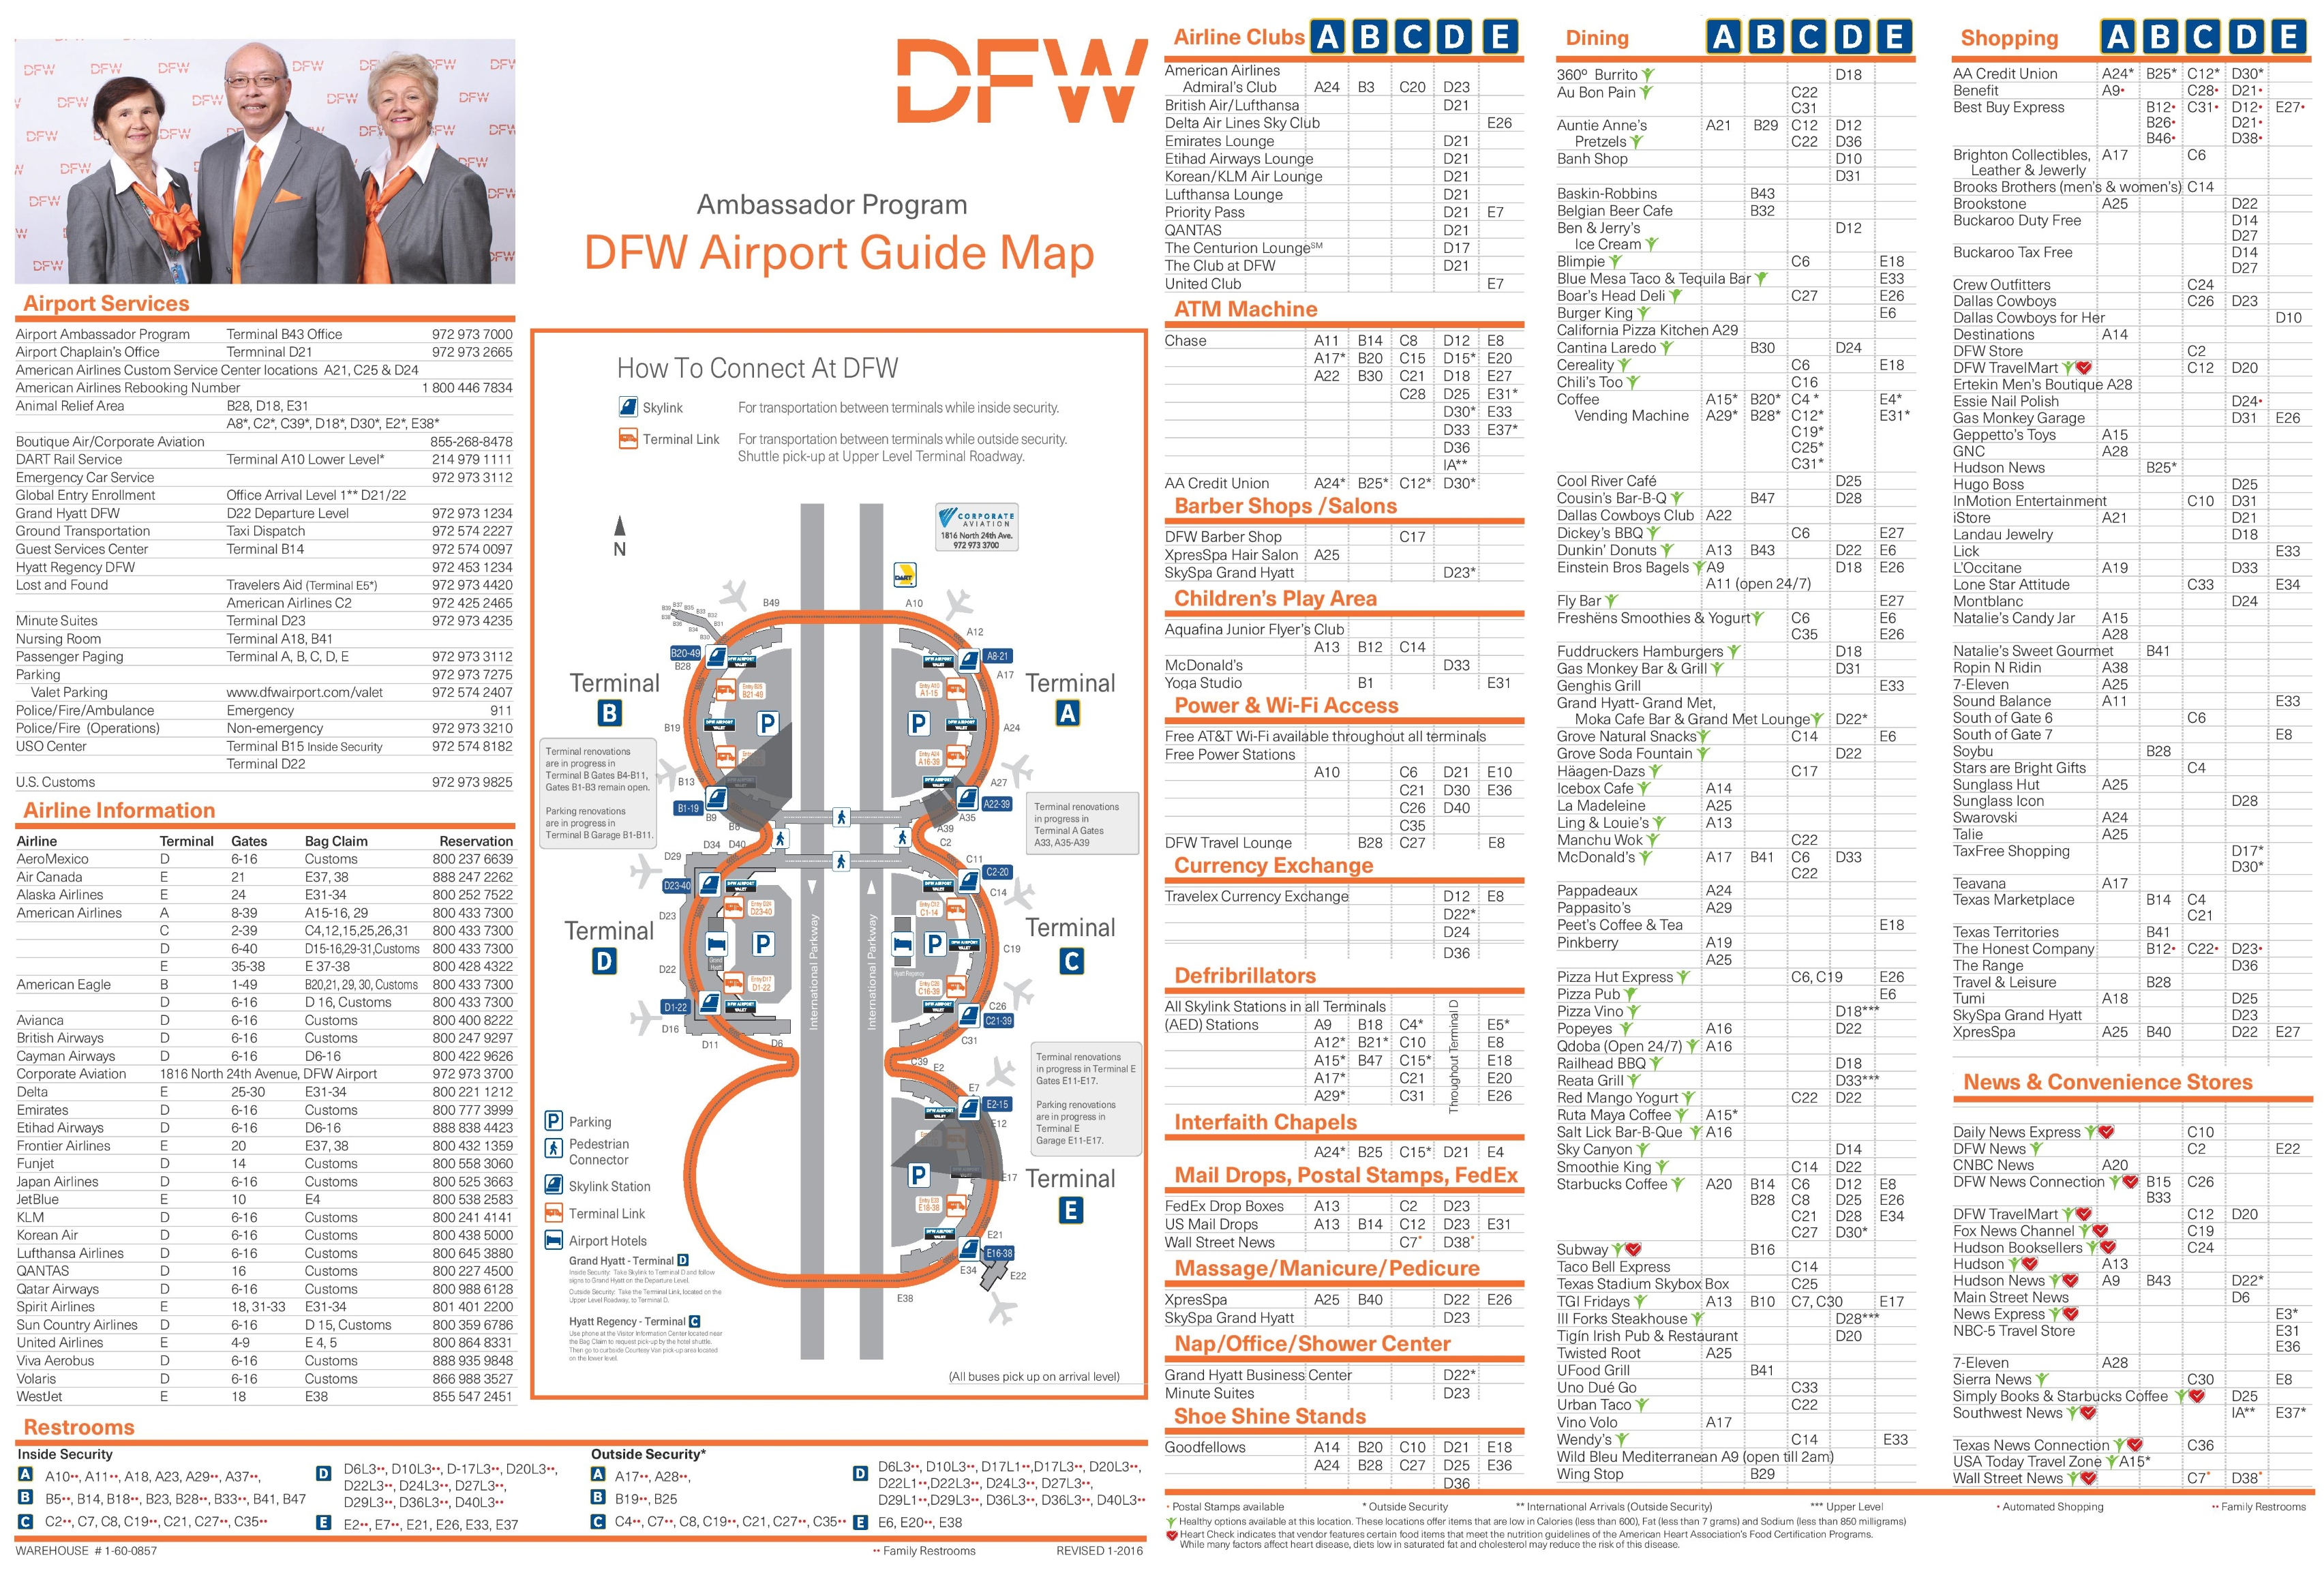 Dallas Fort Worth airport map on dallas ft.worth, dallas fort worth airport map, dallas fort worth texas map, ft.worth map, arlington and fort worth map, greater dallas fort worth map, dallas fort worth map vector, dallas fort worth area, dallas fort worth metroplex cities,